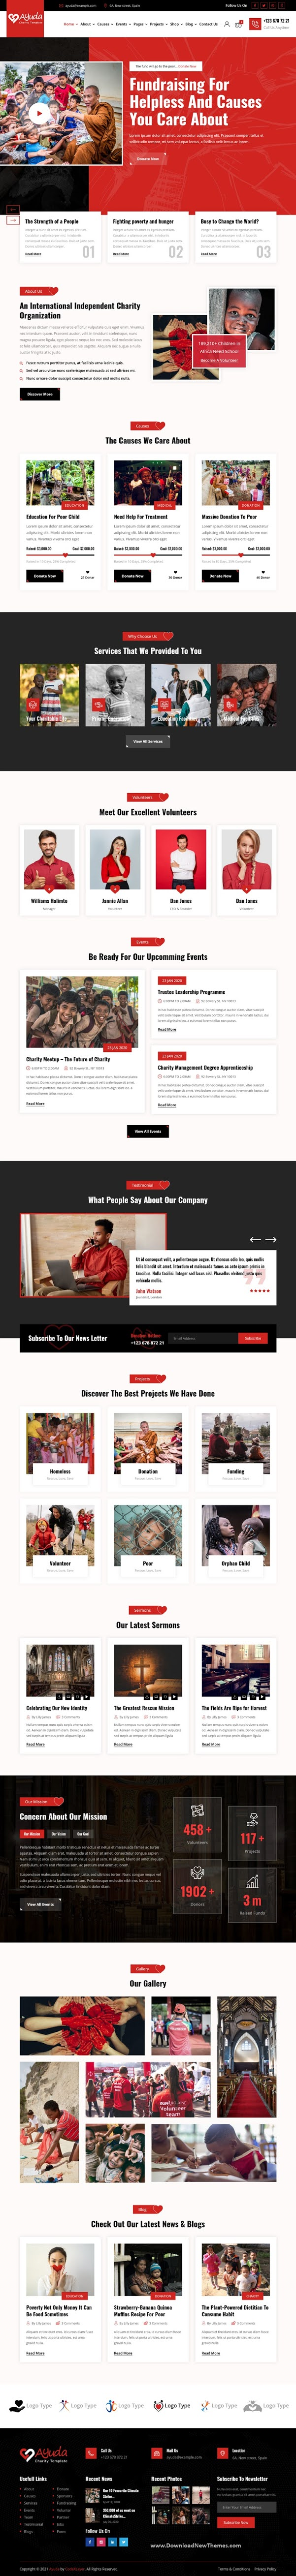 Multipurpose Charity Bootstrap Template